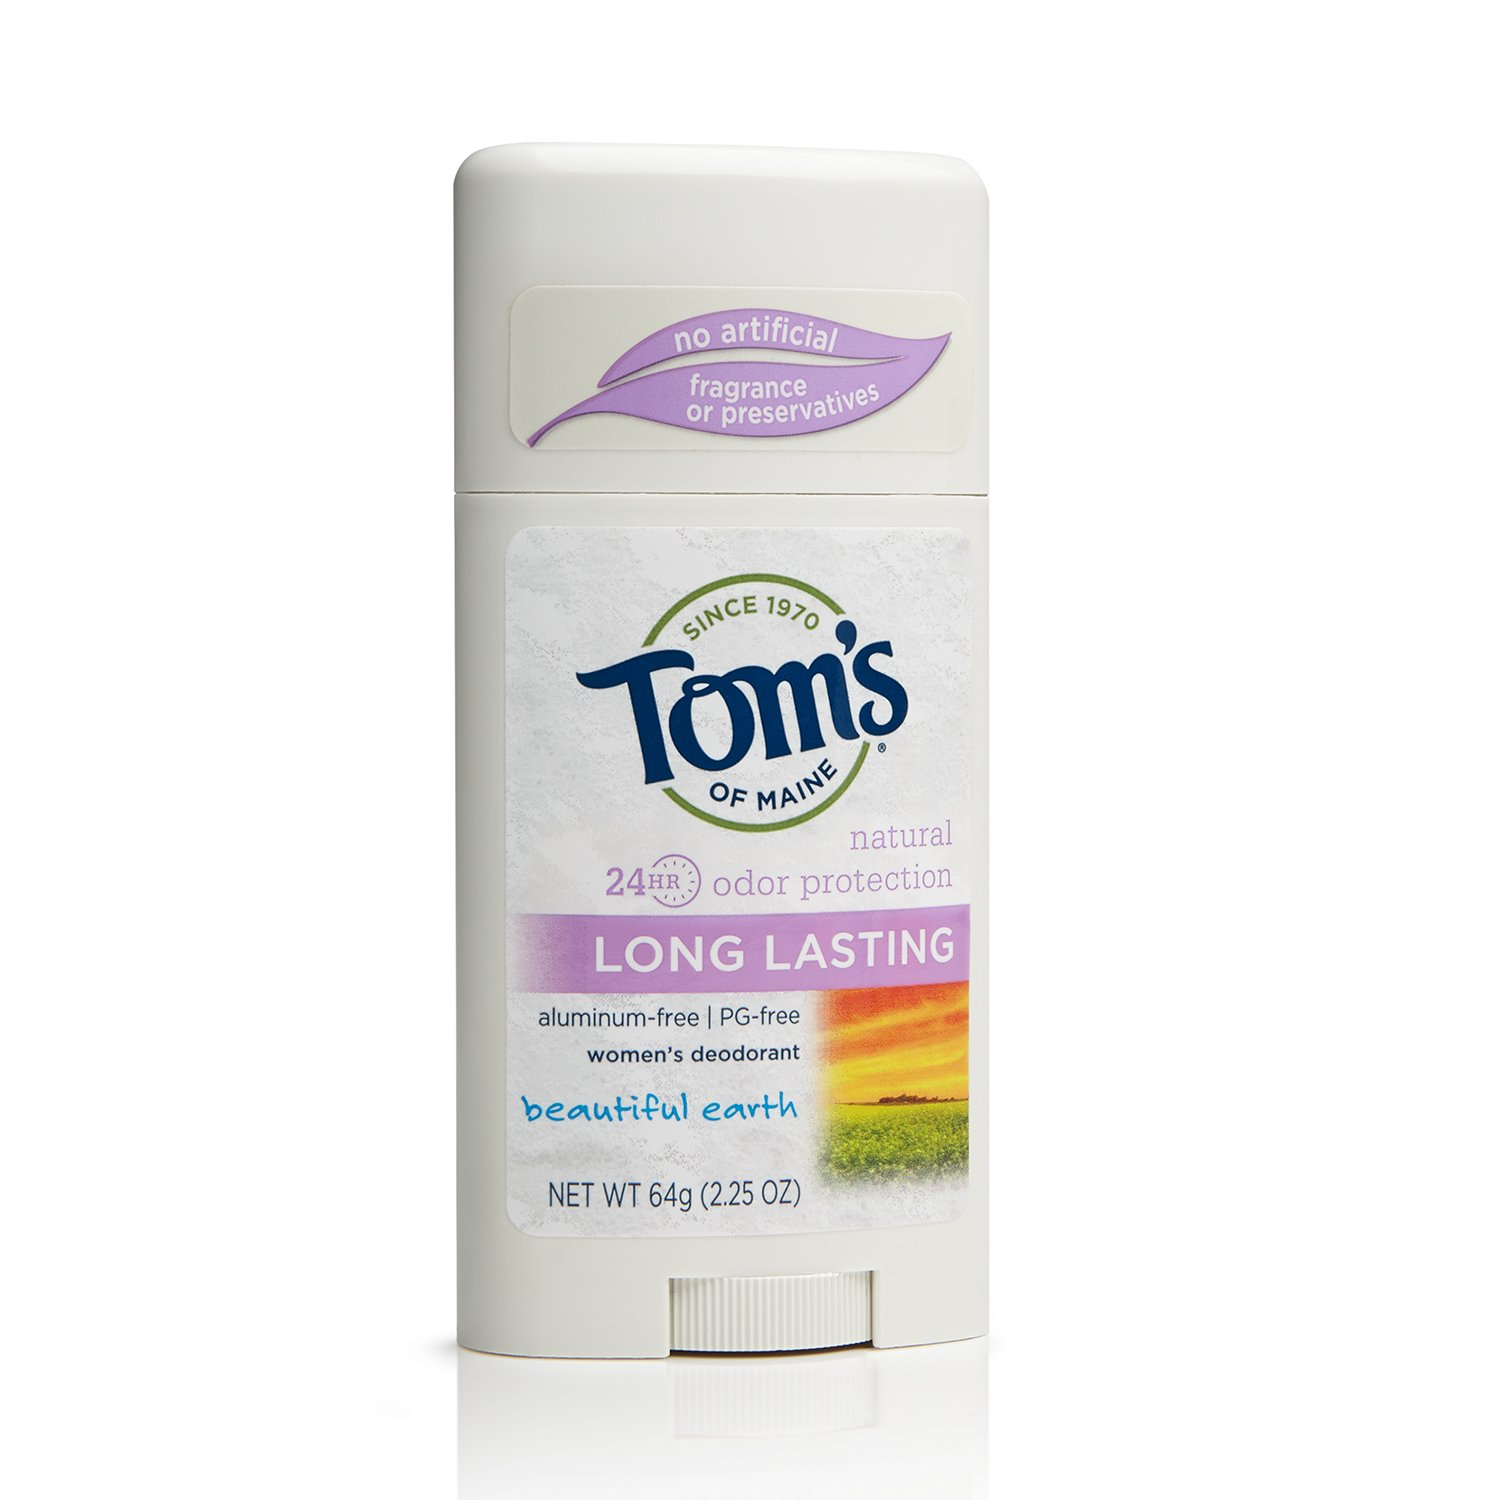 Tom's of Maine 683625 Long-Lasting Women's Deodorant Stick, Beautiful Earth, 2.25 Ounce, 18 Count